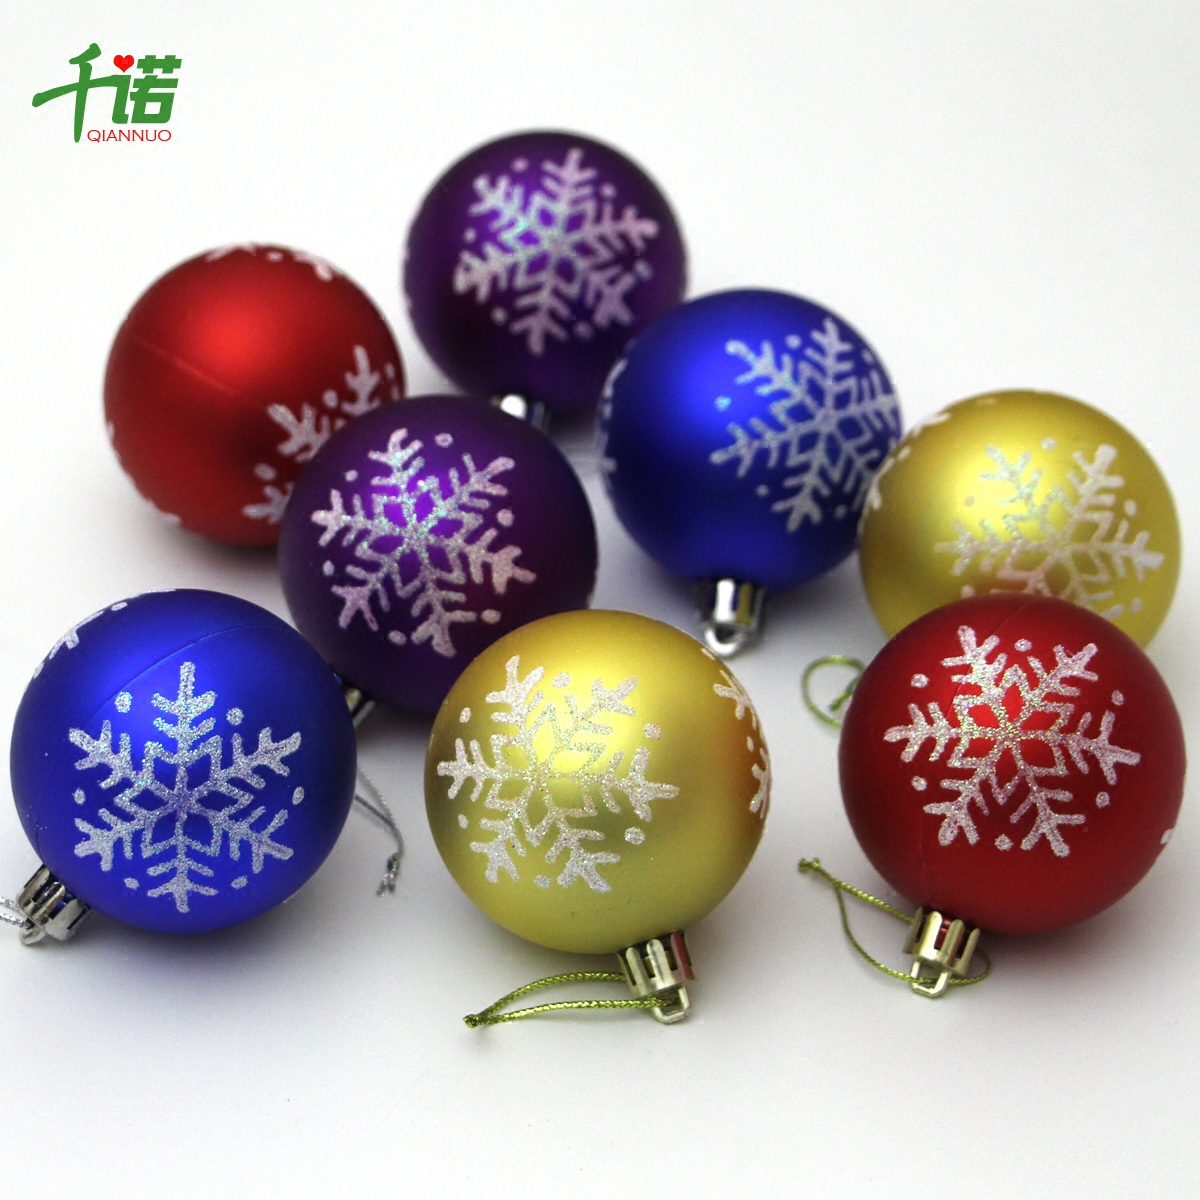 senno christmas decorations christmas tree pendant 8cm snowflake painted christmas ball 6cm golden matte painted ball